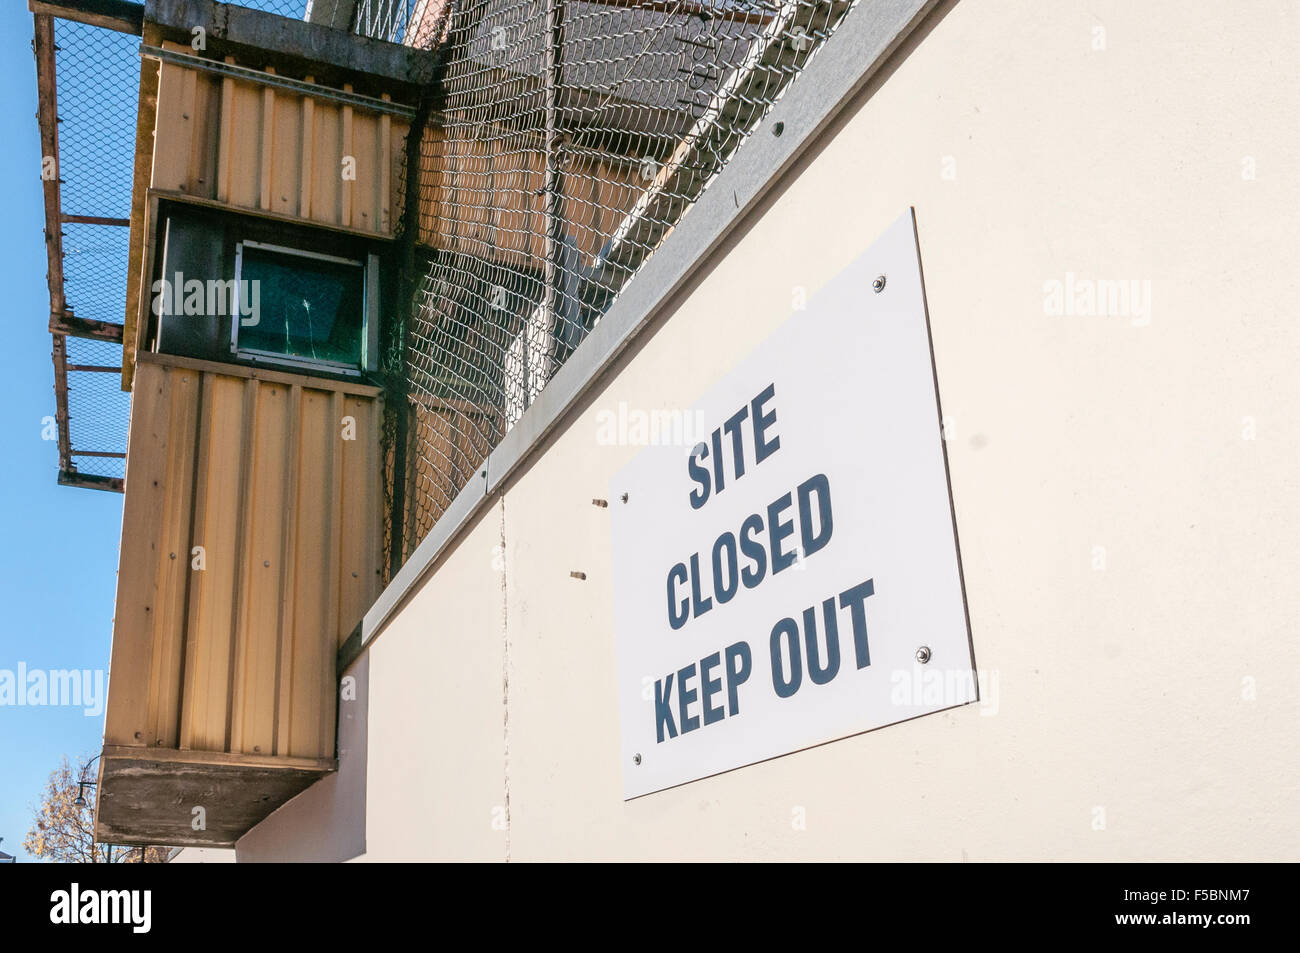 Sign saying 'Site Closed. Keep Out' at a former PSNI police station in Northern Ireland. - Stock Image